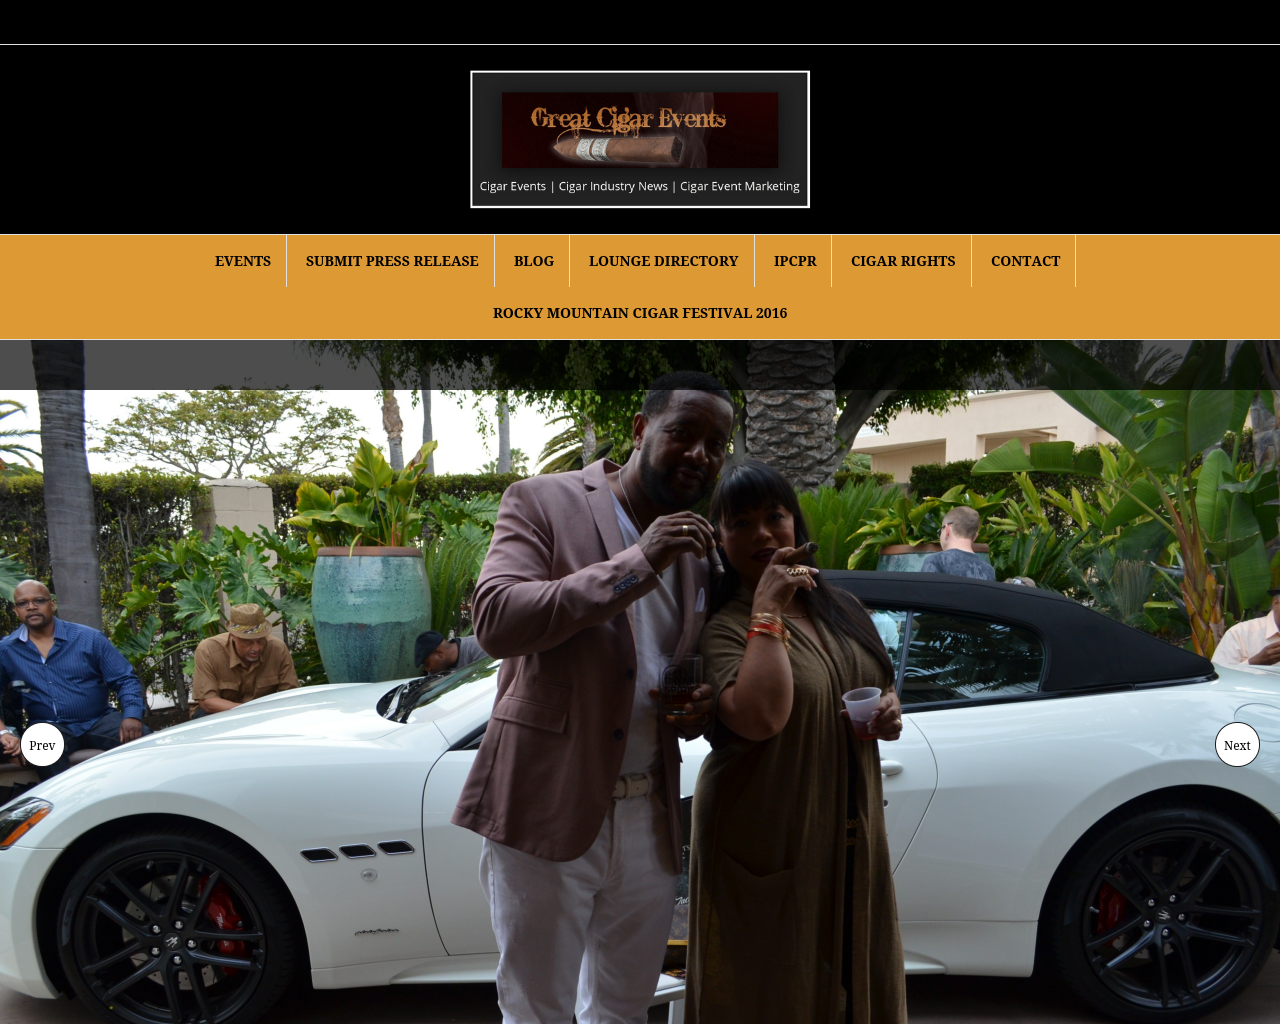 Great-Cigar-Events-Advertising-Reviews-Pricing